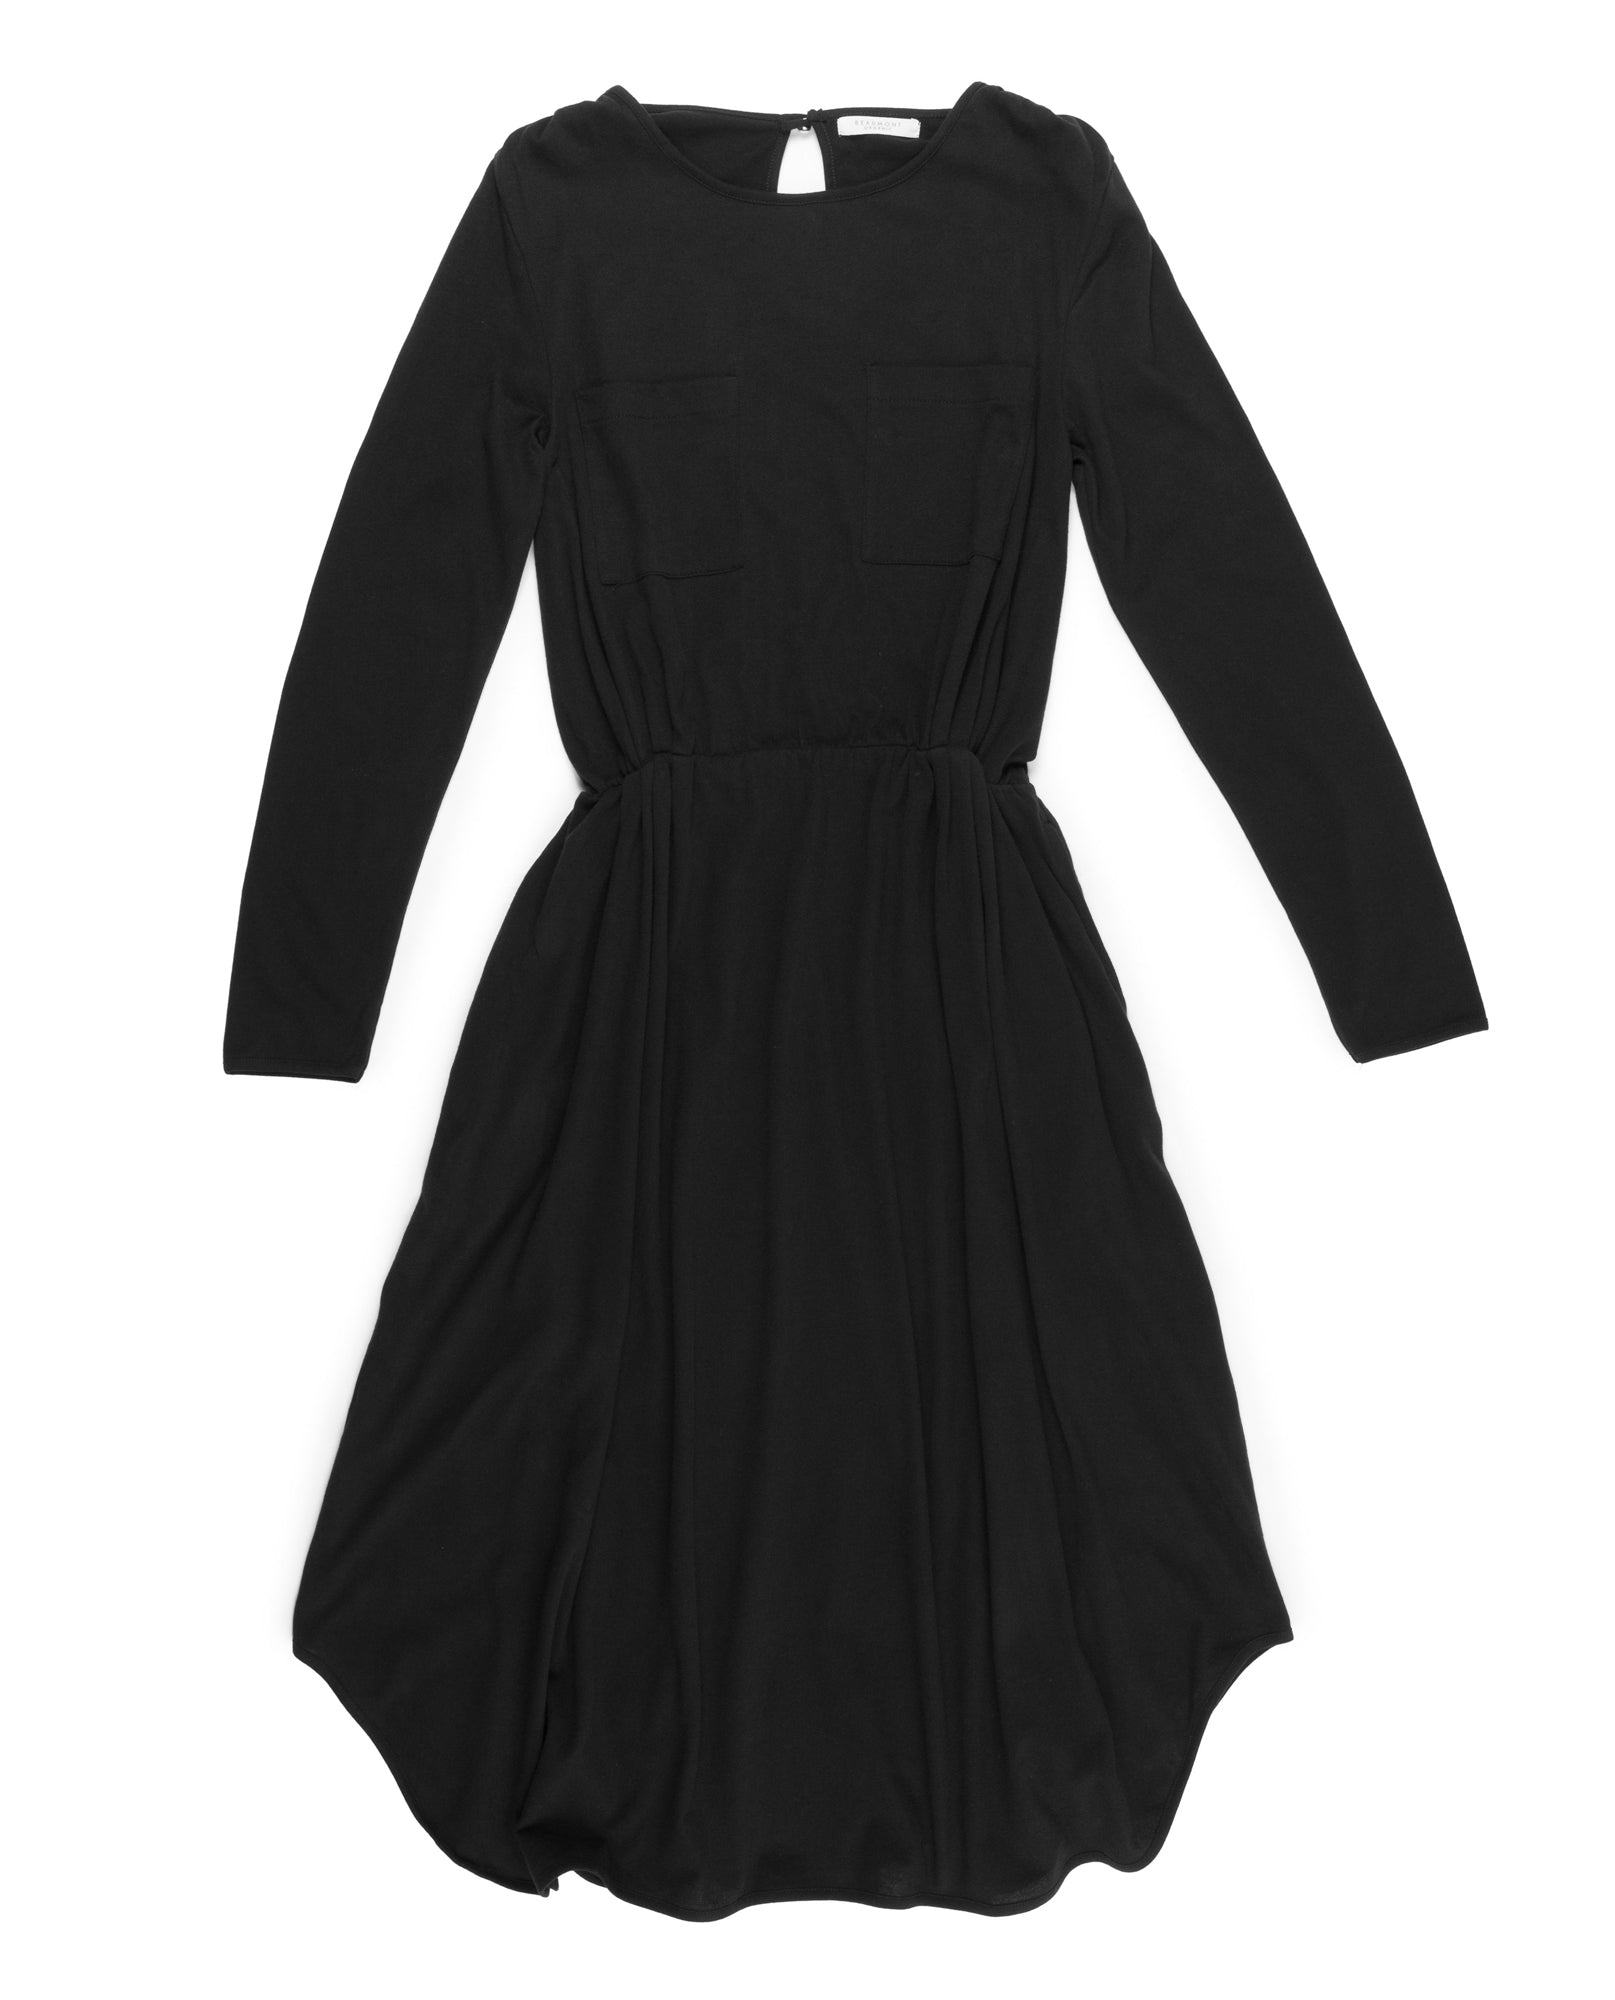 JENNA Organic Cotton Dress In Black from Beaumont Organic